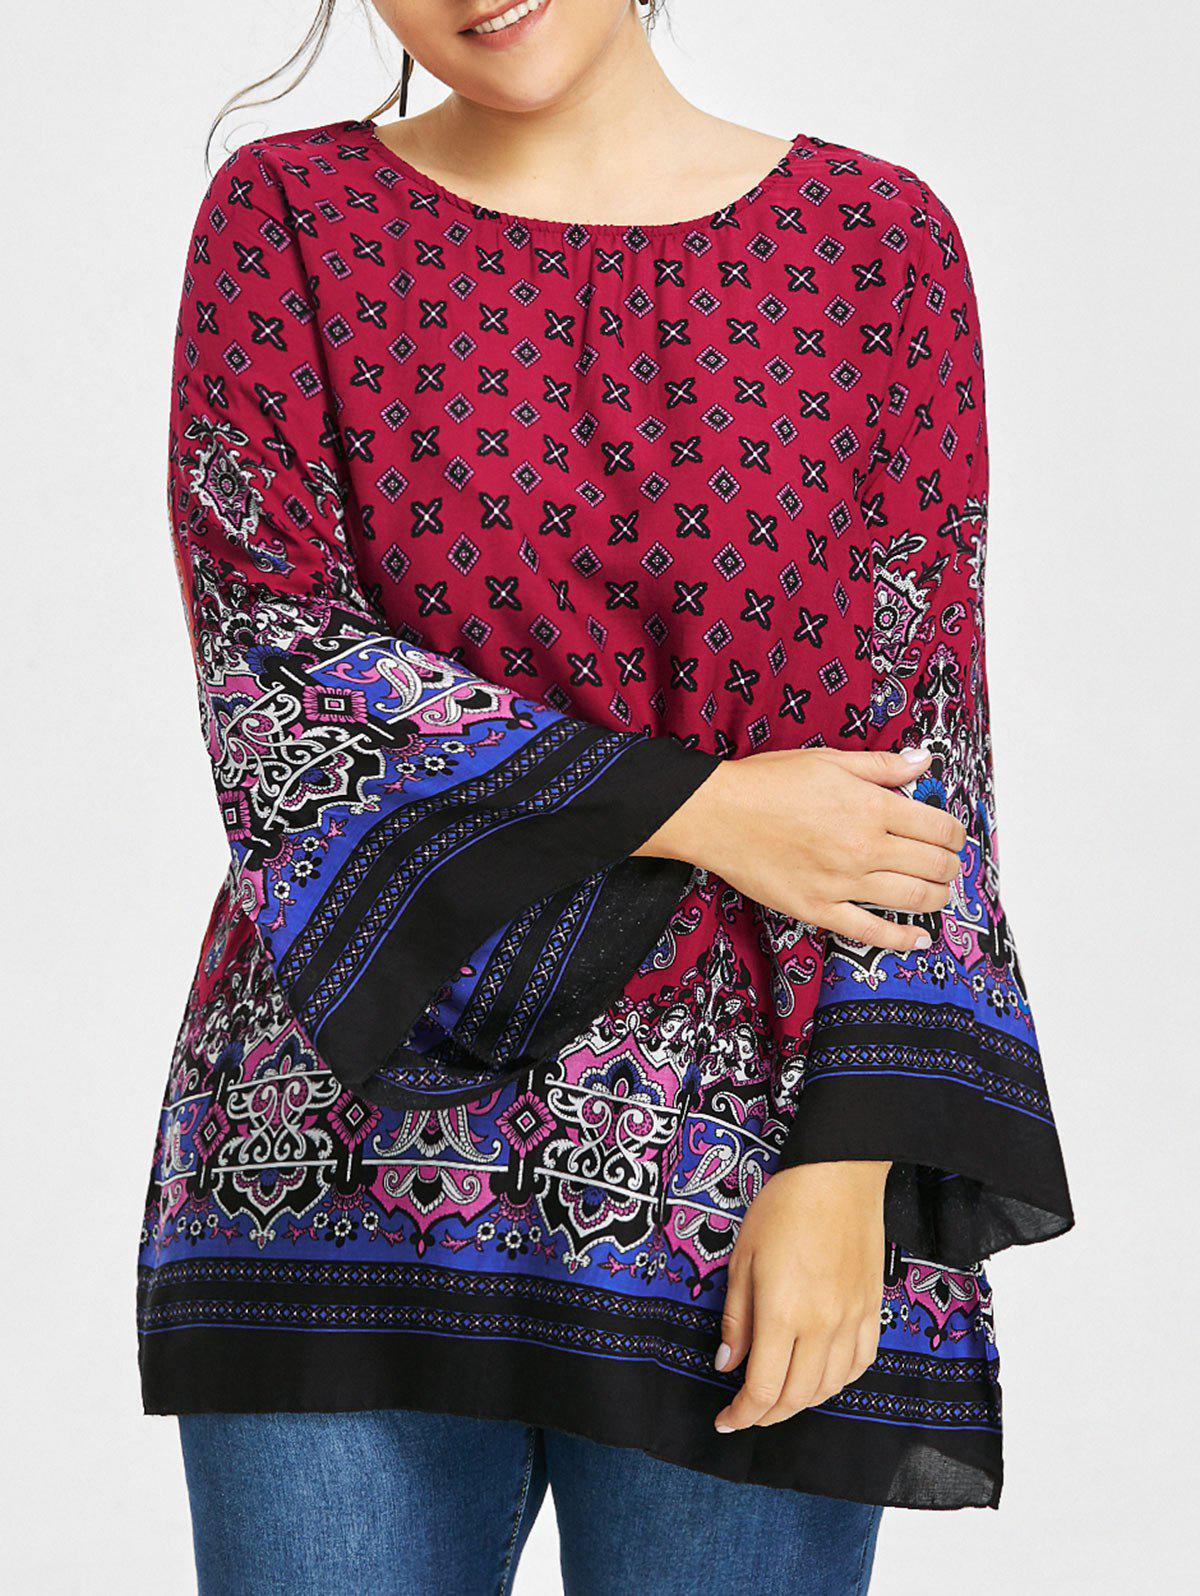 Plus Size Tribe Print Bell Sleeve BlouseWOMEN<br><br>Size: 5XL; Color: WINE RED; Material: Polyester; Shirt Length: Long; Sleeve Length: Full; Collar: Scoop Neck; Style: Fashion; Season: Fall,Spring; Pattern Type: Print; Weight: 0.2050kg; Package Contents: 1 x Blouse;